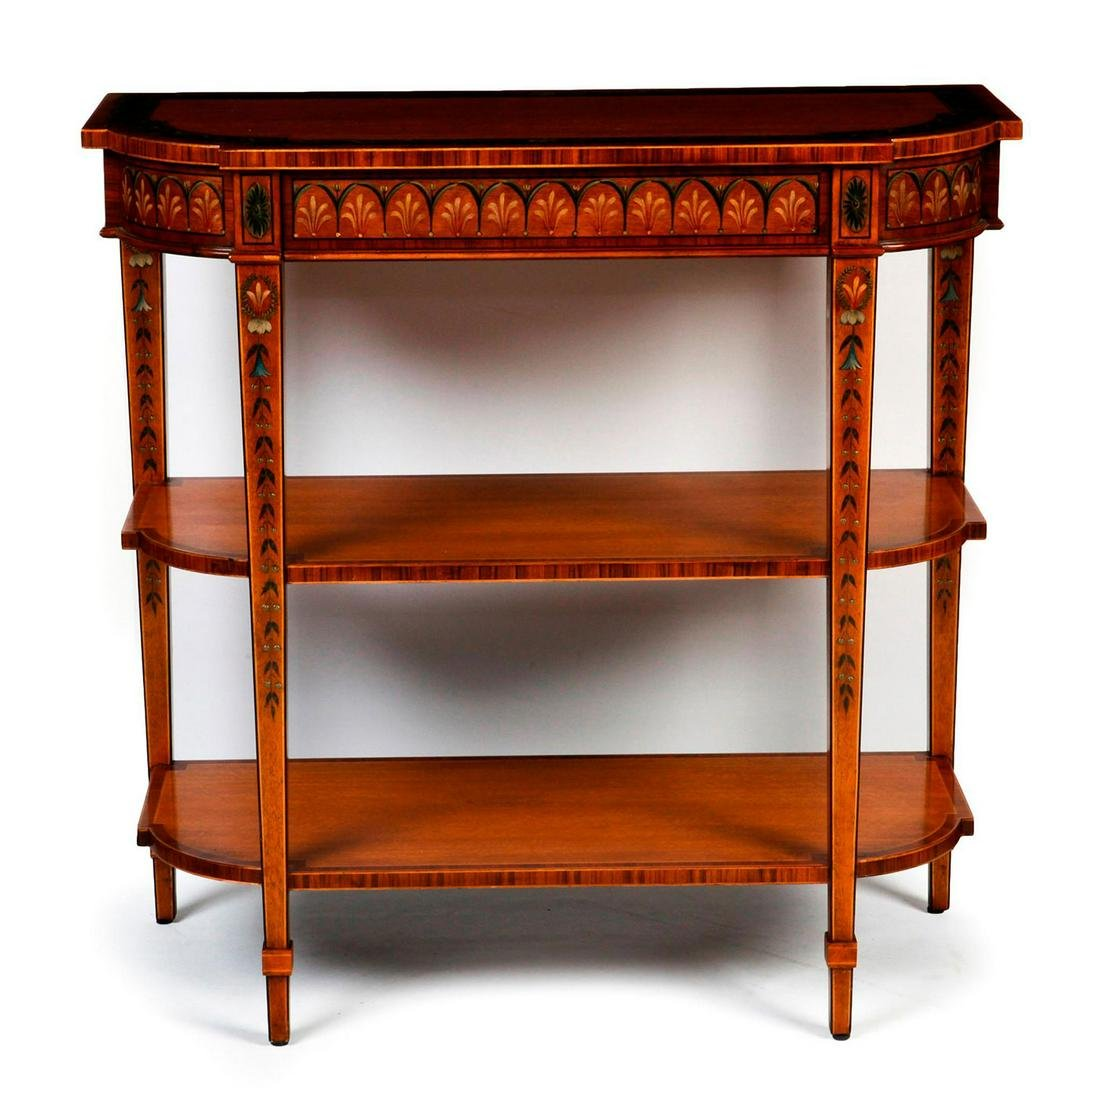 THEODORE ALEXANDER CONSOLE W. DRAWERS, DISPLAY SHELVES